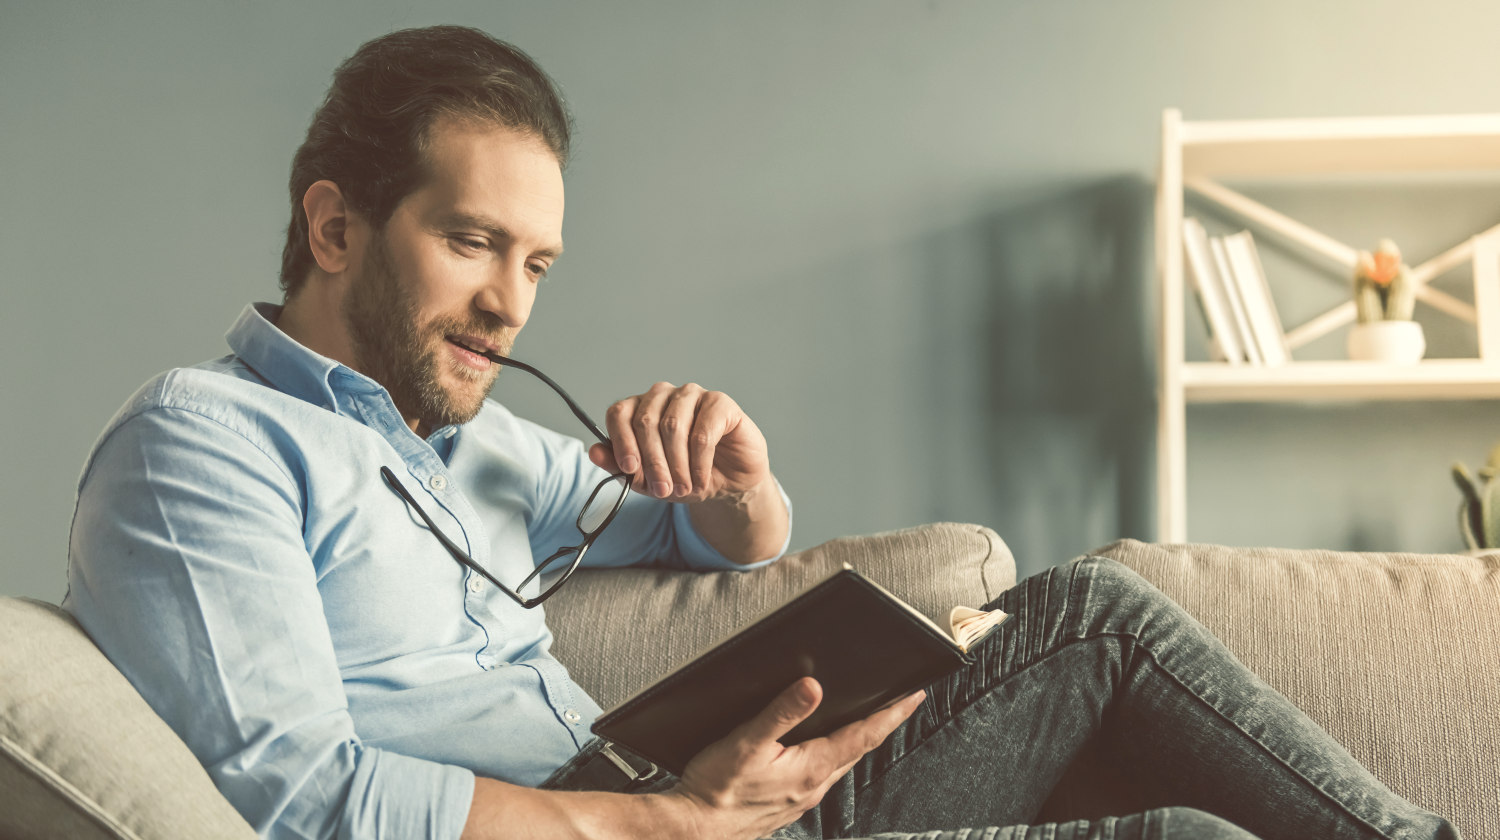 Handsome businessman is reading a book | Characteristics of Highly Intelligent People | Highly Intelligent People Characteristics | signs of highly intelligent people | Featured